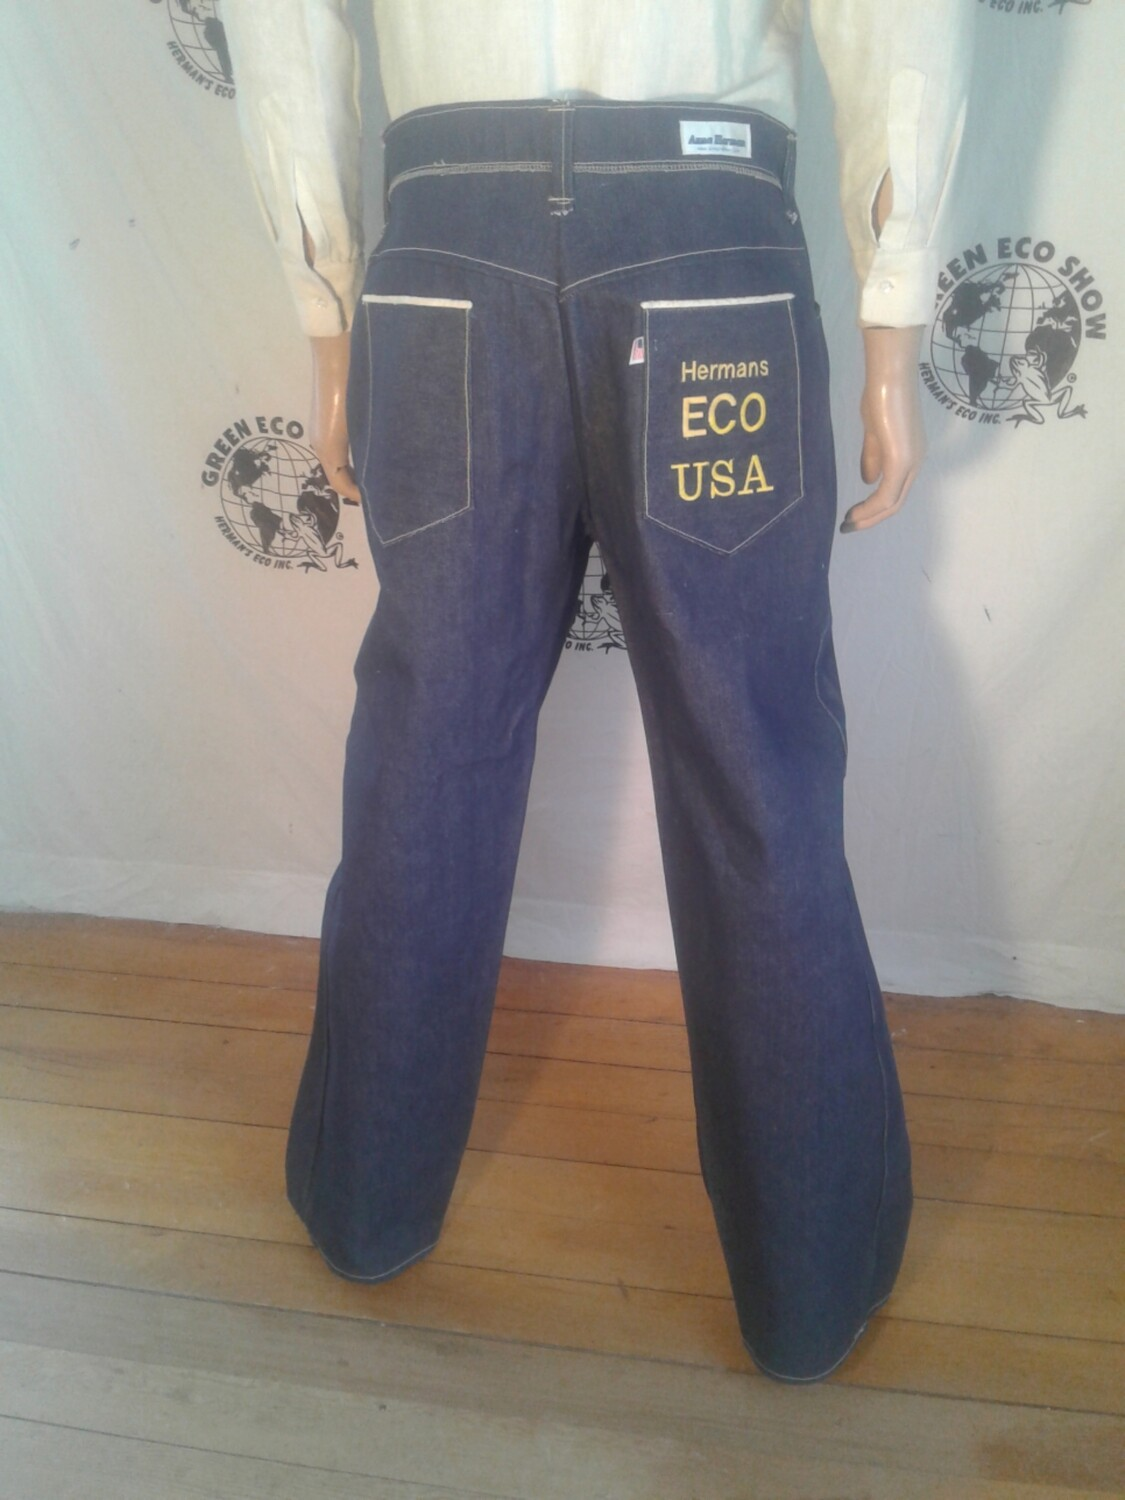 Hermans Eco denim jeans 38 X 33 thick USA